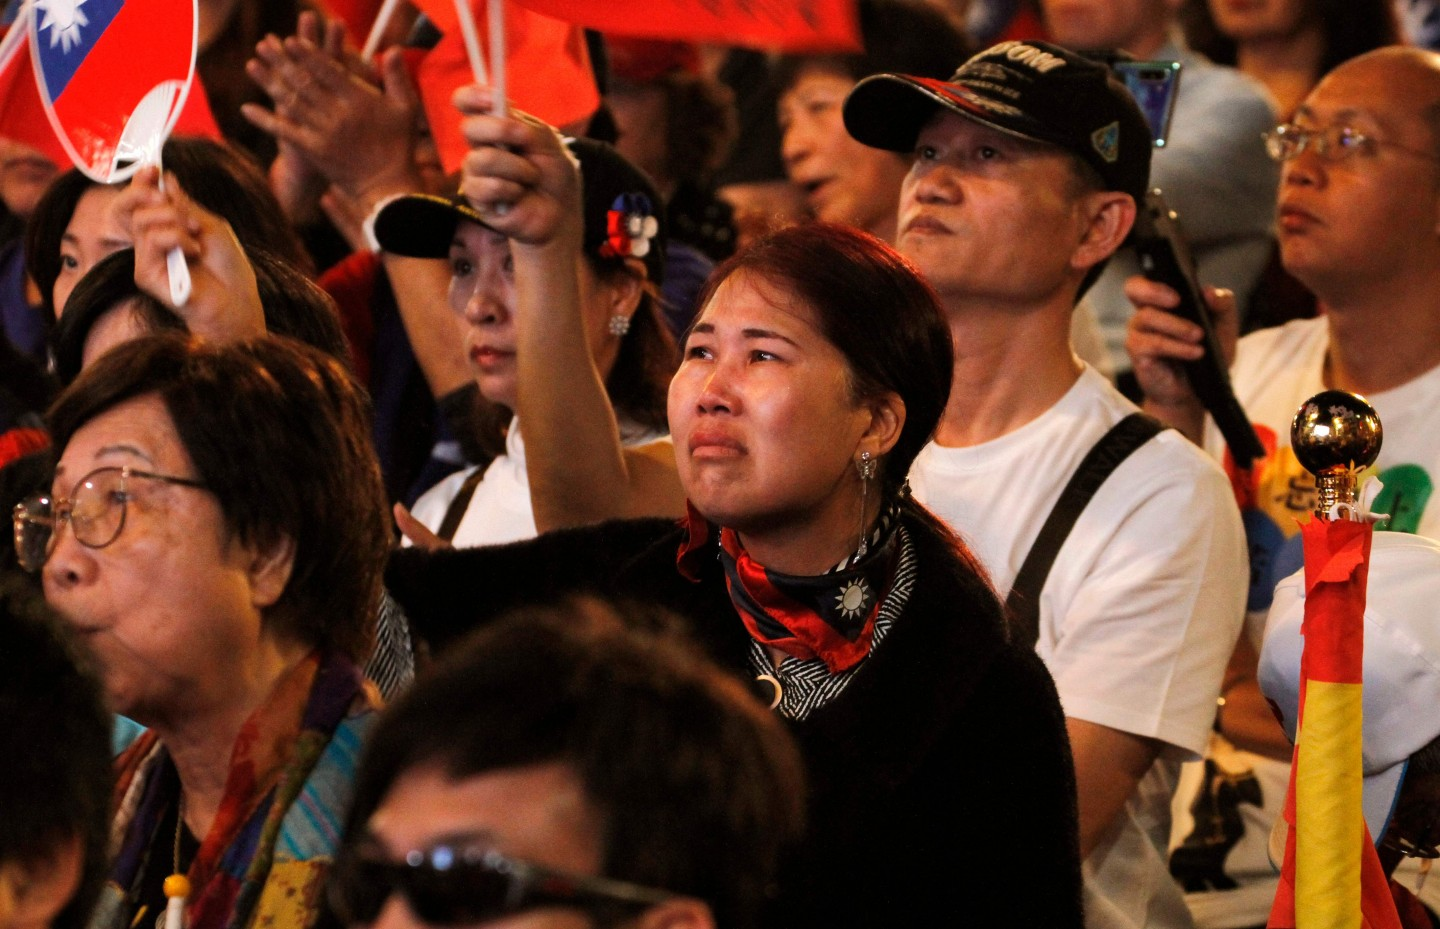 Supporters of Han Kuo-Yu, presidential candidate for Taiwan's main opposition Kuomintang (KMT) party, react as he conceded defeat in the presidential polls during a rally outside the party headquarters in Kaohsiung on 11 January 11 2020. (Hsu Tsun-hsu/AFP)